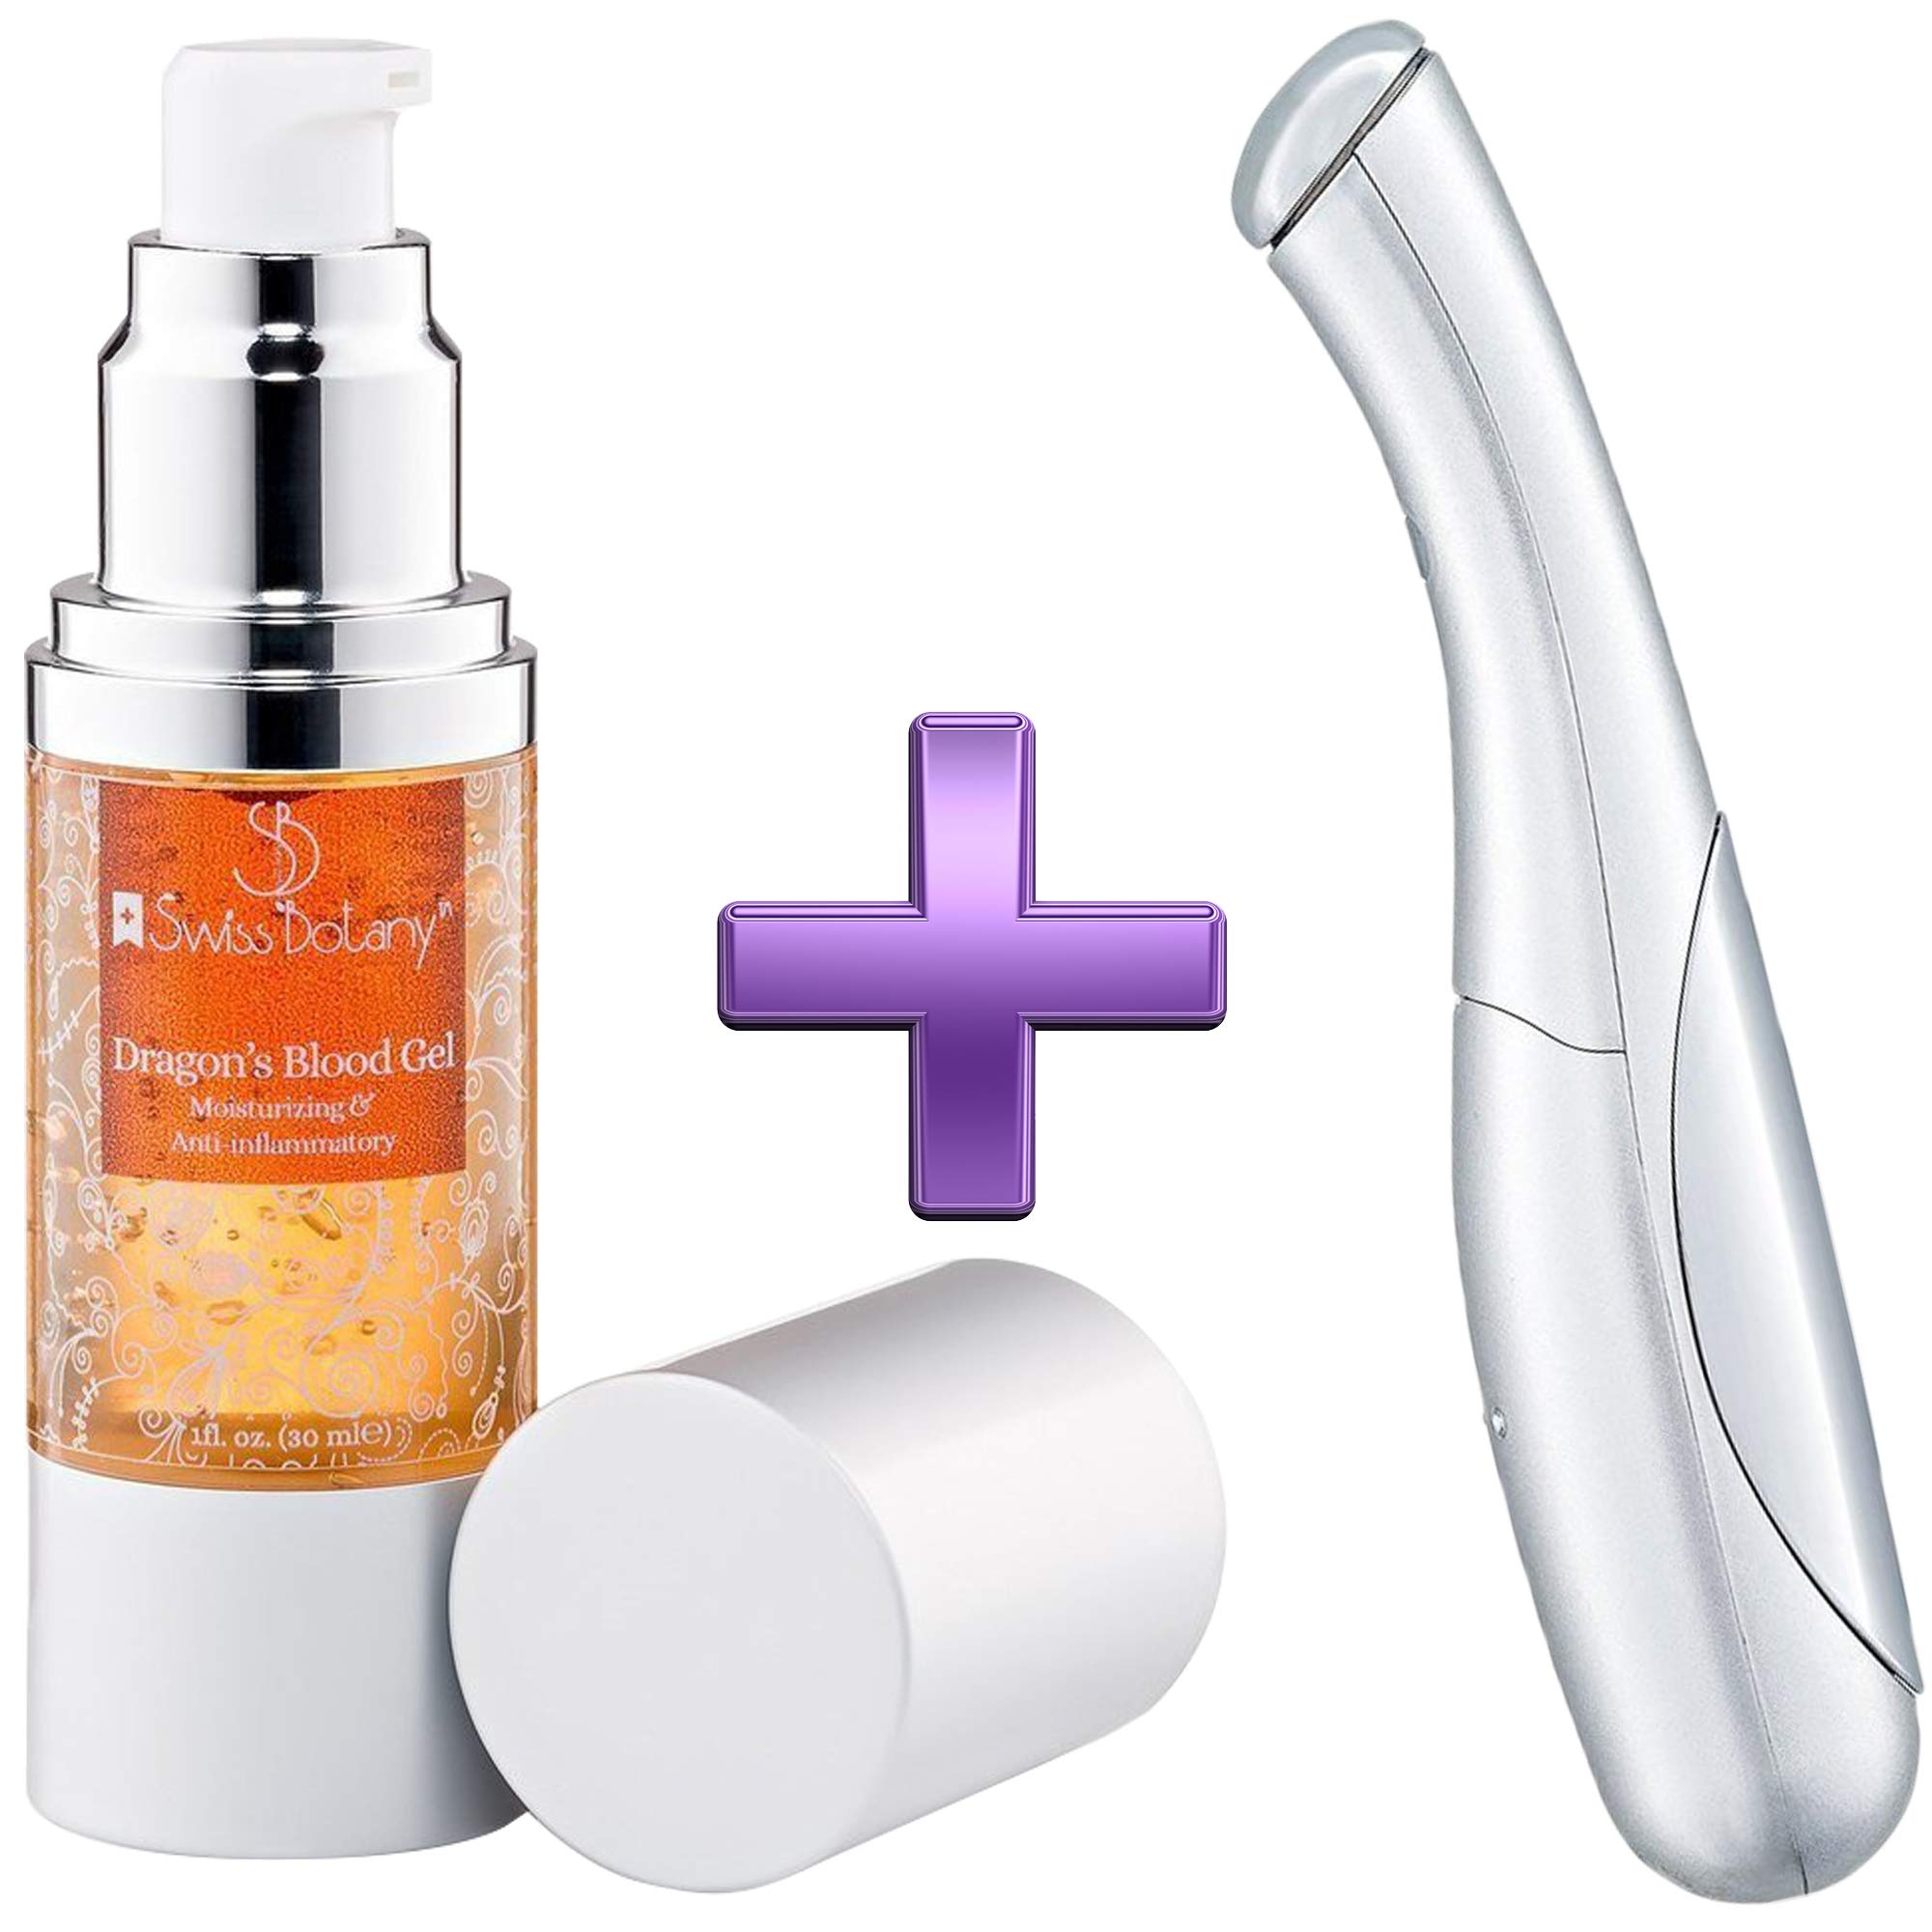 Under Eye Lift Gel for Dark Circles and Puffiness Instantly Lifts eye wrinkles by Swiss Botany